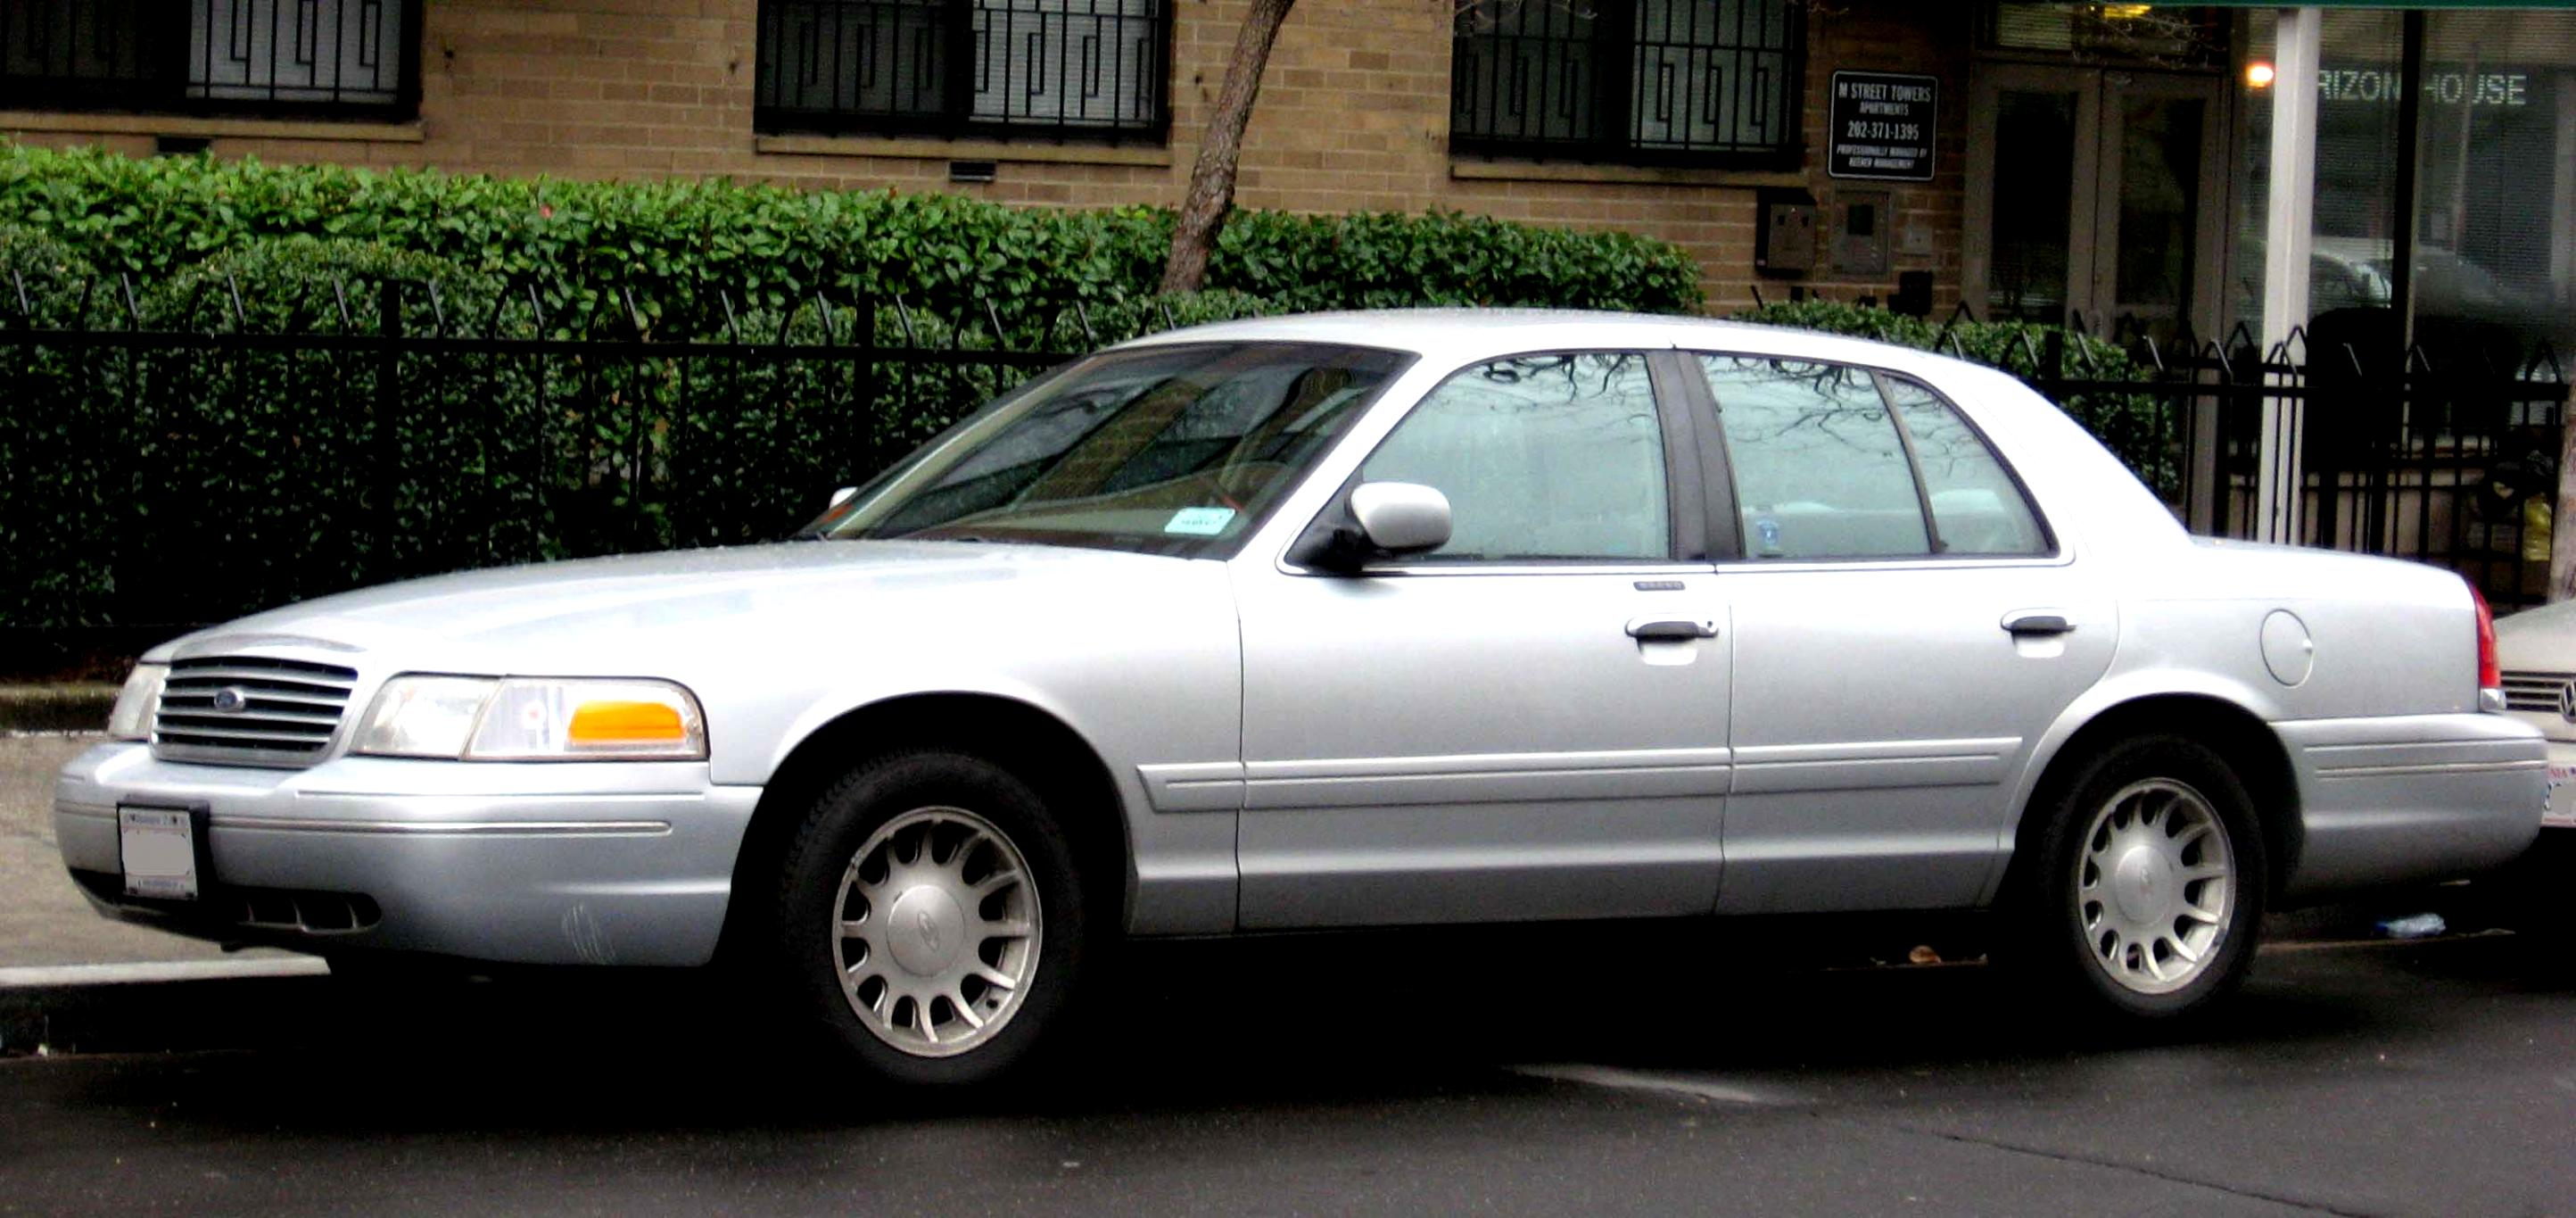 Ford Crown Victoria 1998 #3